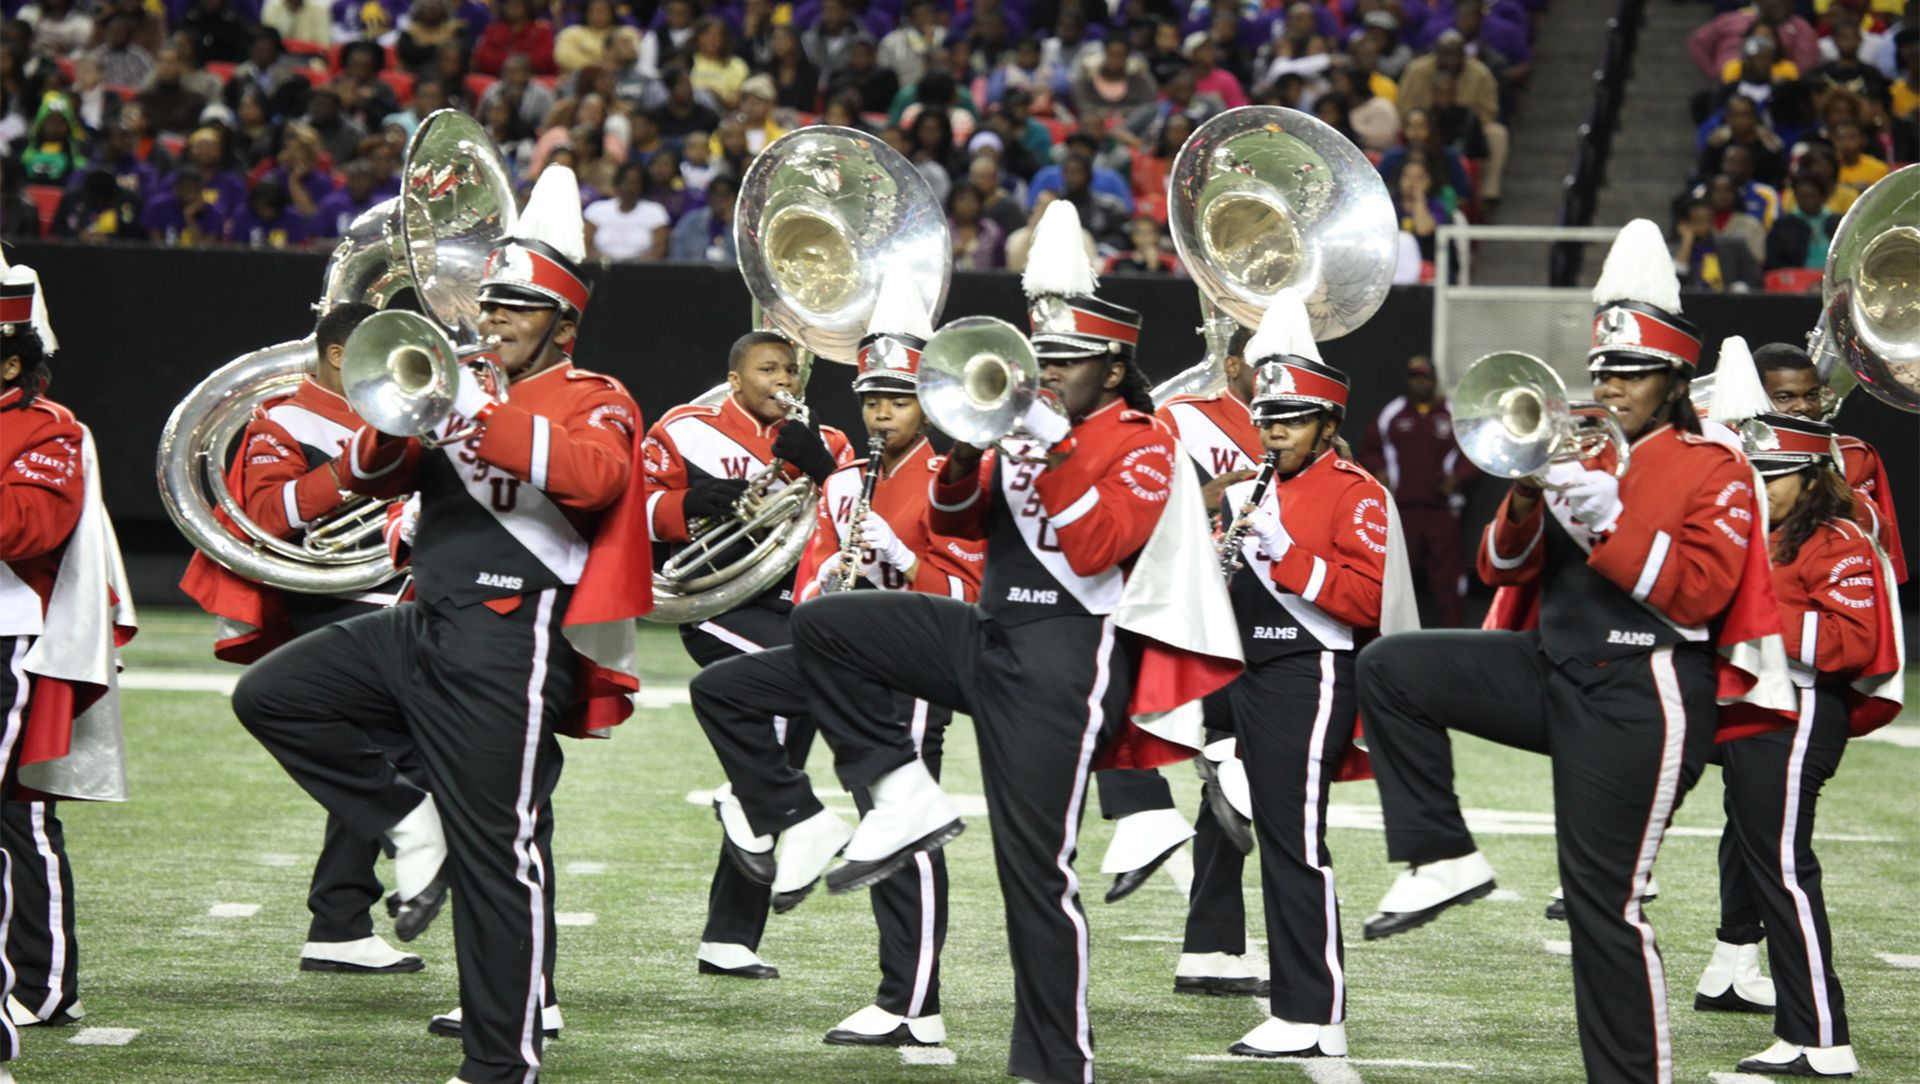 The Field Is Set For Eight Hbcu Marching Bands To Perform At The 12th Annual Honda Battle Of The Bands Invitational Showcase Auto Moto Japan Bullet